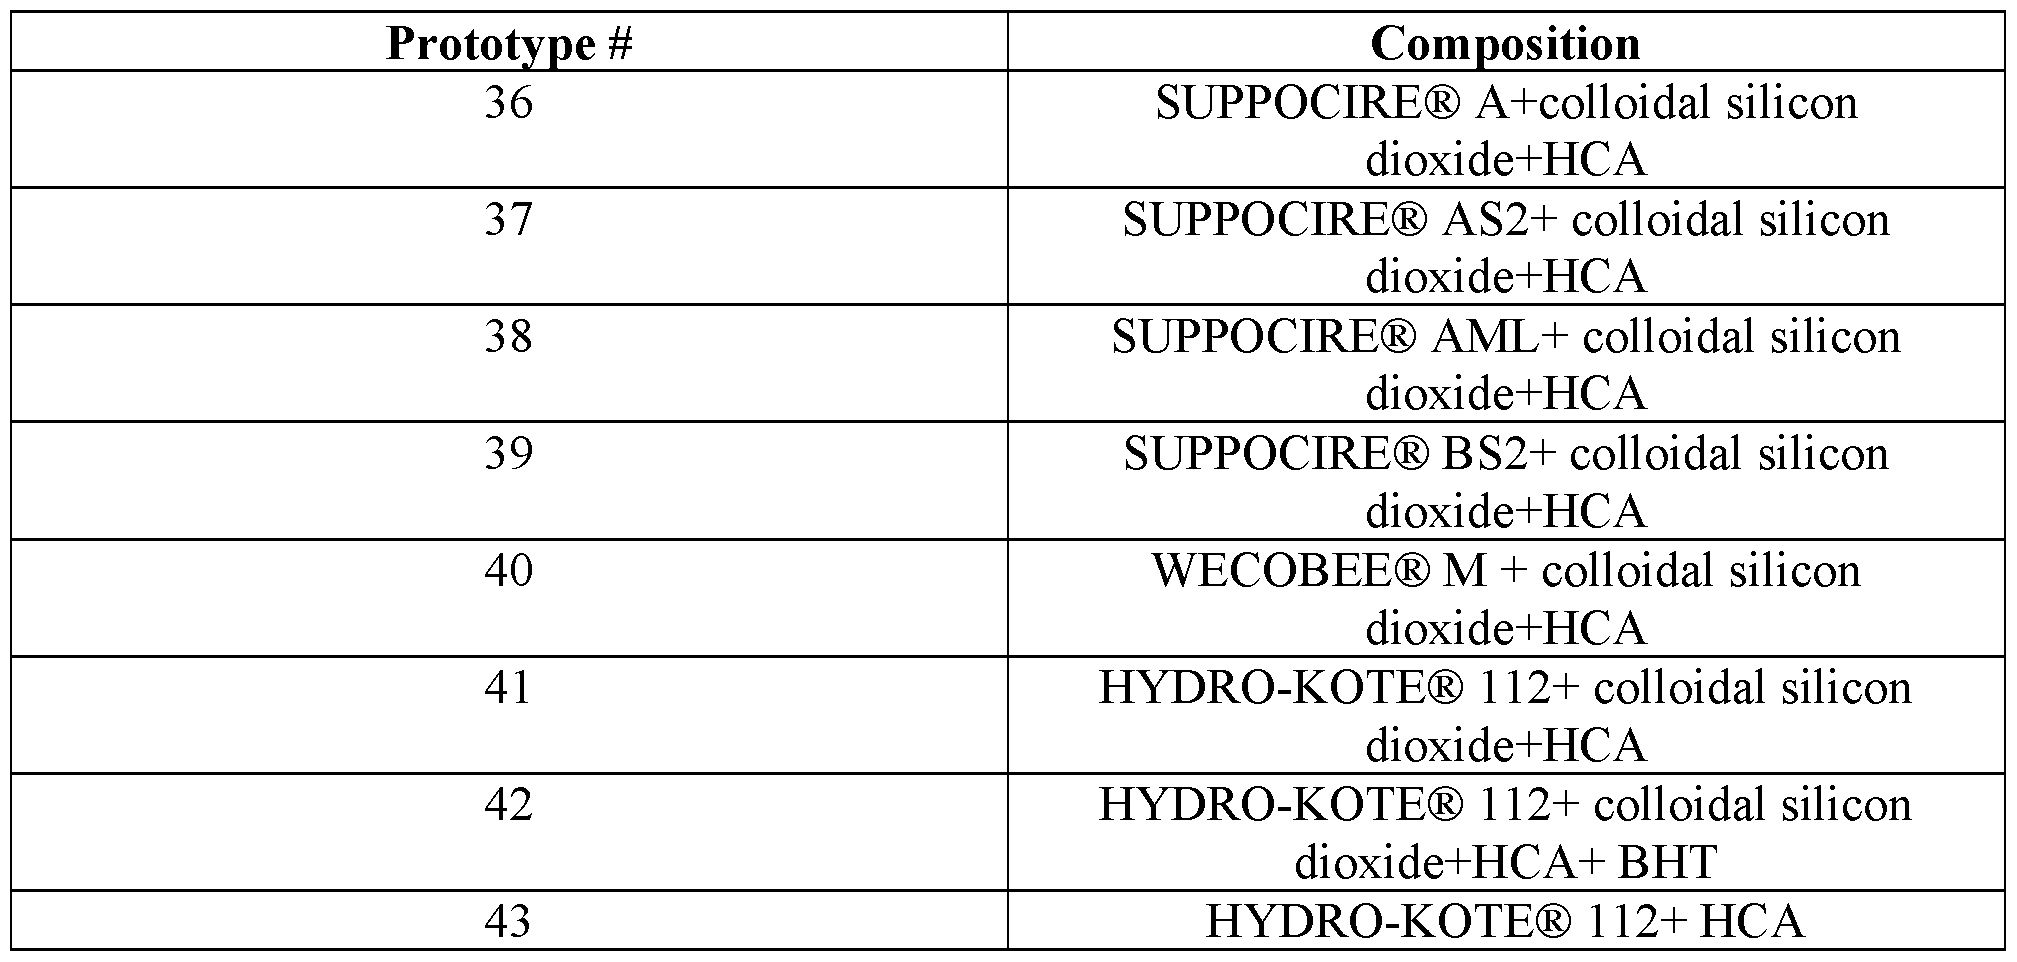 WO2016145233A1 - Hydrocortisone acetate suppository formulation for